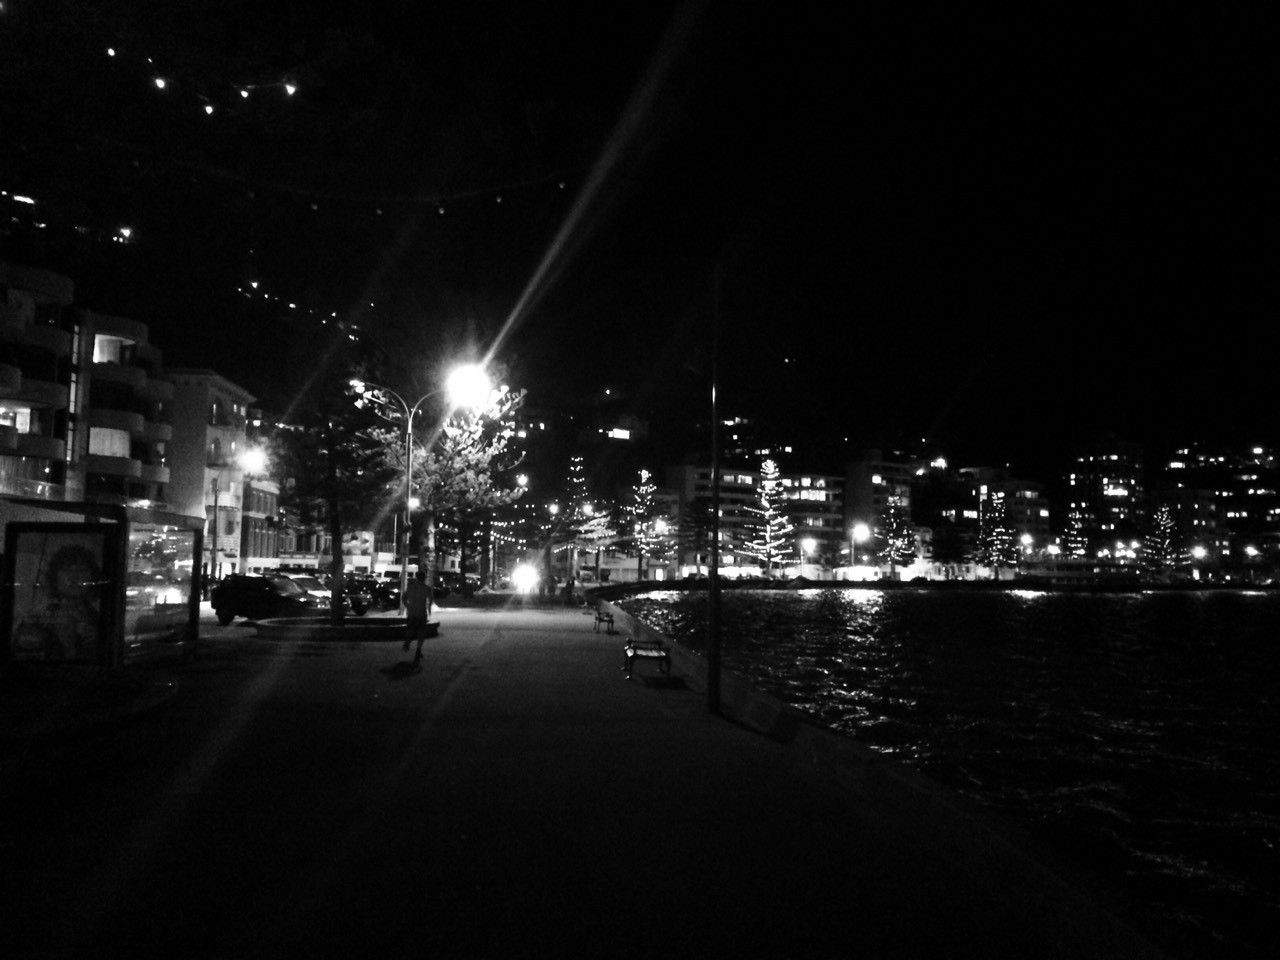 Oriental Parade by night, lights strung in the trees, shining on the water